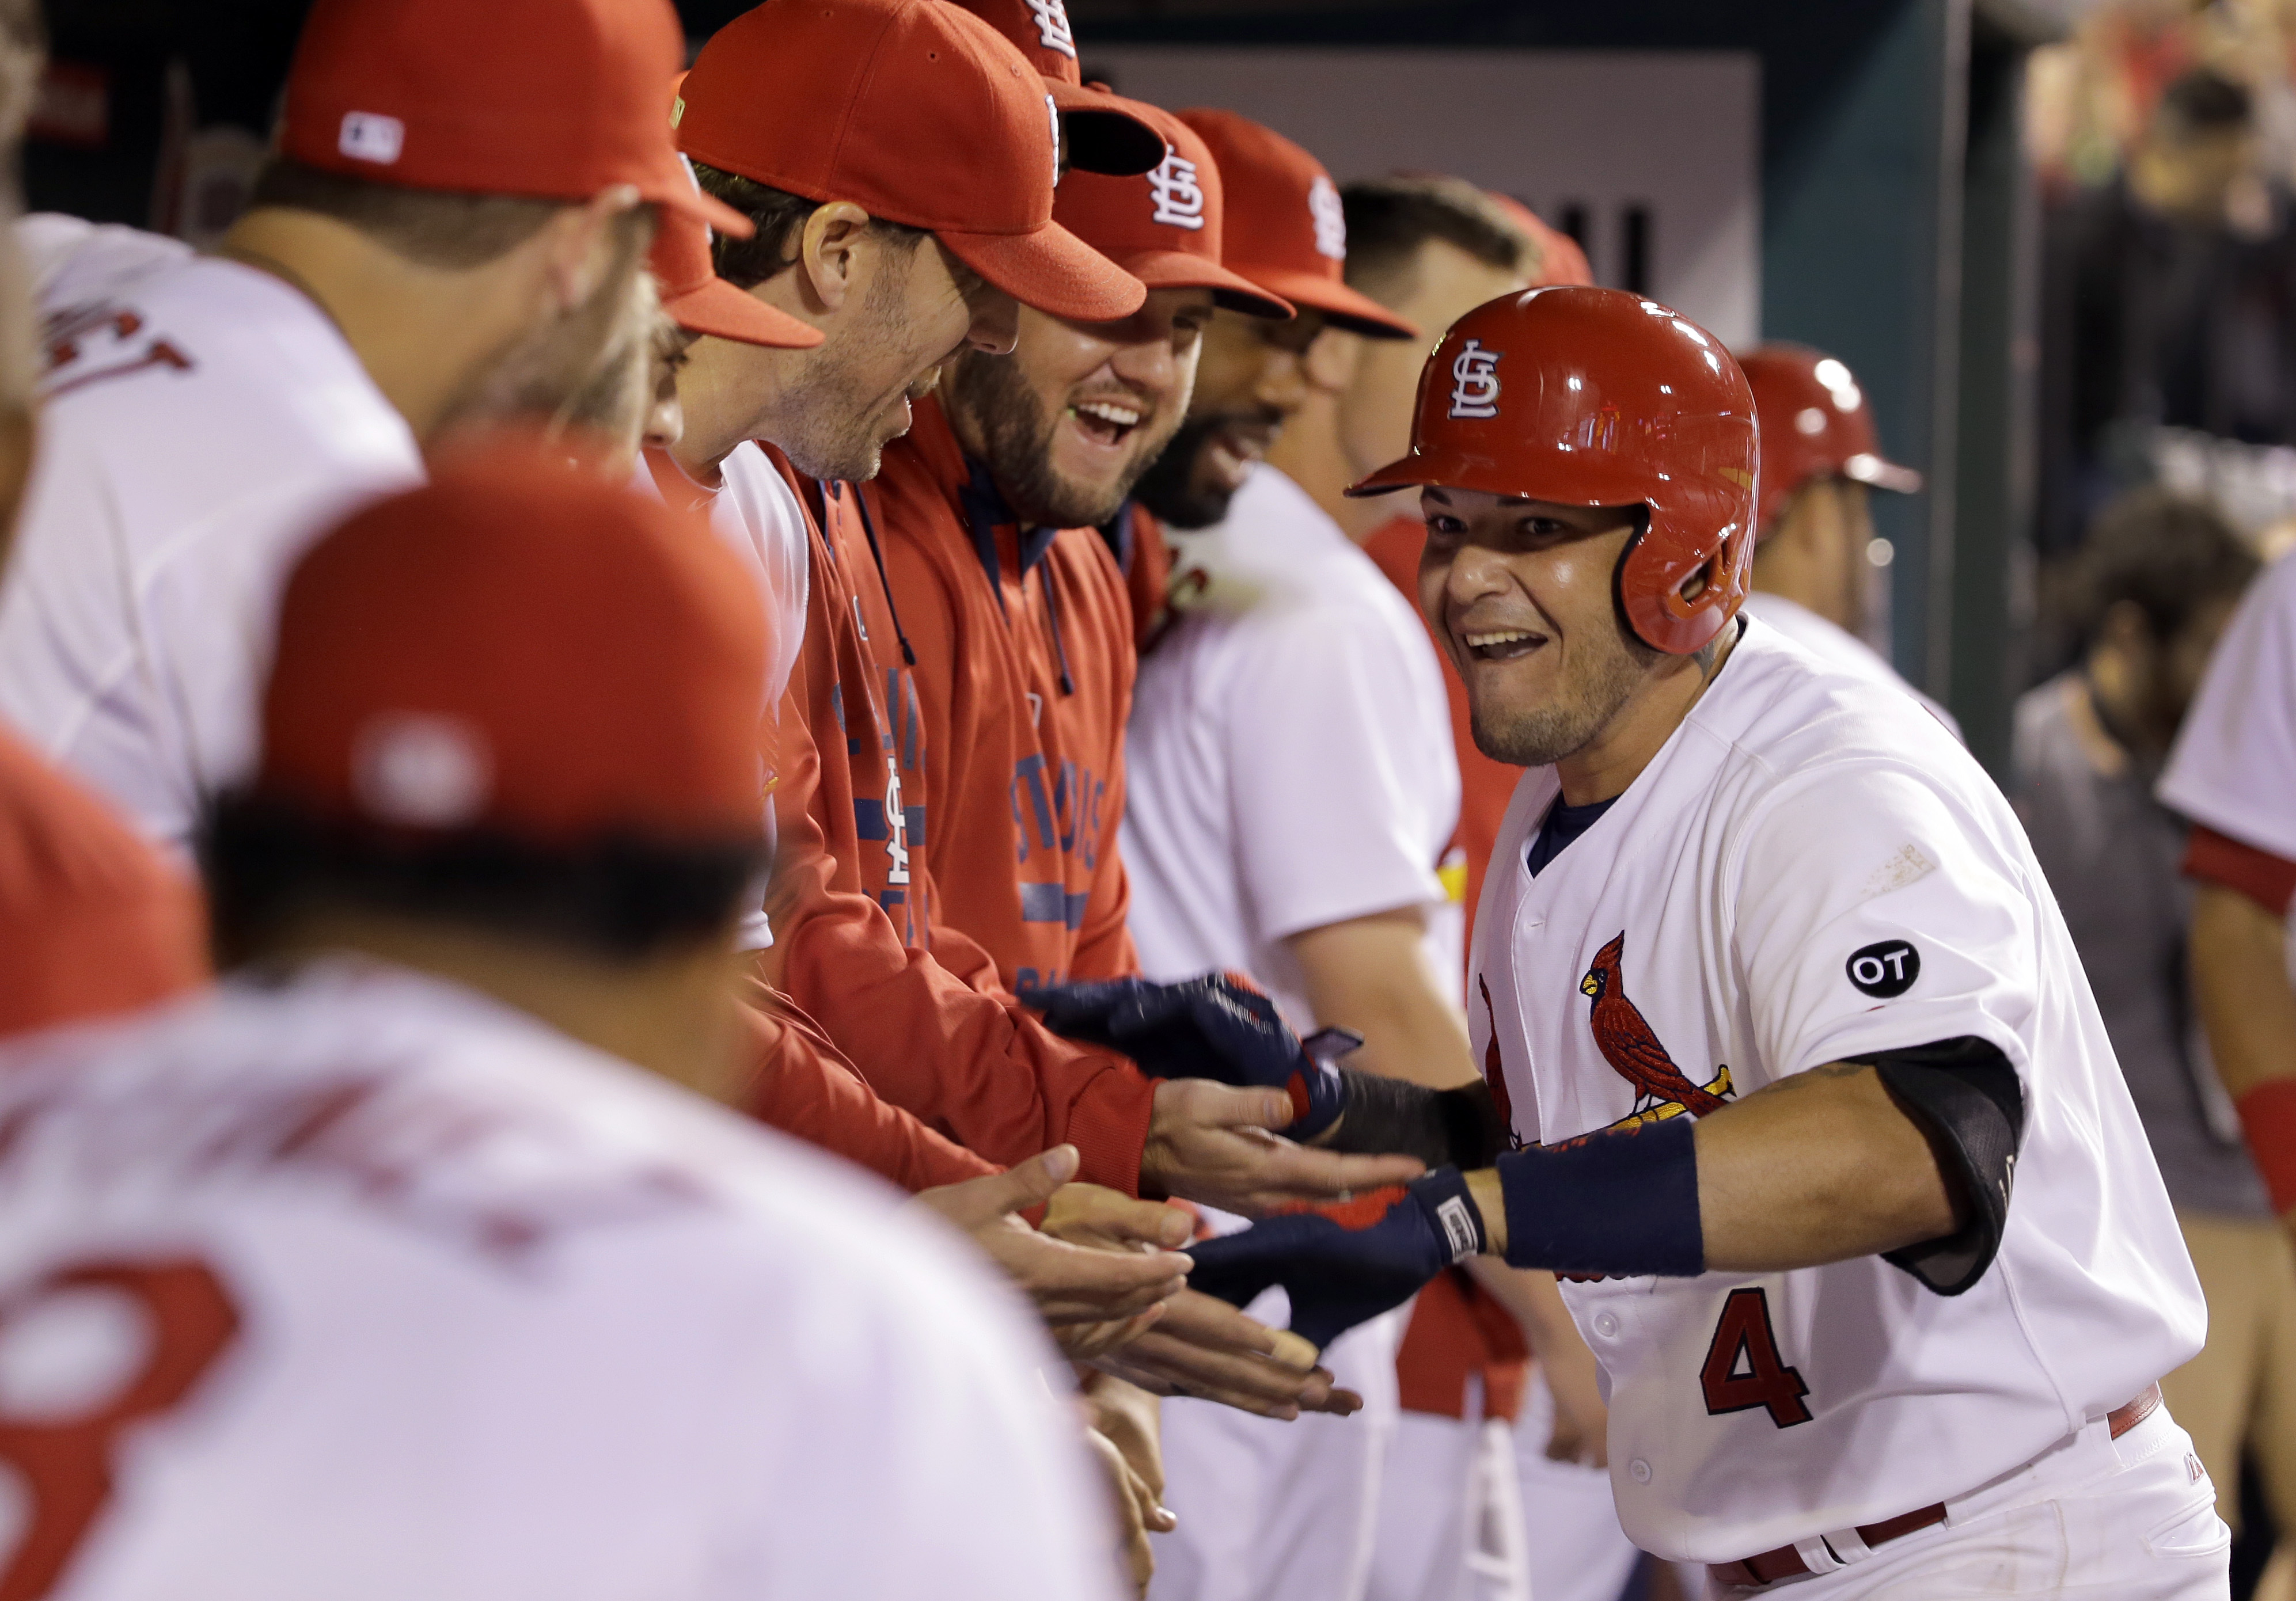 St. Louis Cardinals' Yadier Molina, right, is congratulated by teammates in the dugout after hitting a solo home run during the eighth inning of a baseball game against the San Francisco Giants, Wednesday, Aug. 19, 2015, in St. Louis. (AP Photo/Jeff Rober